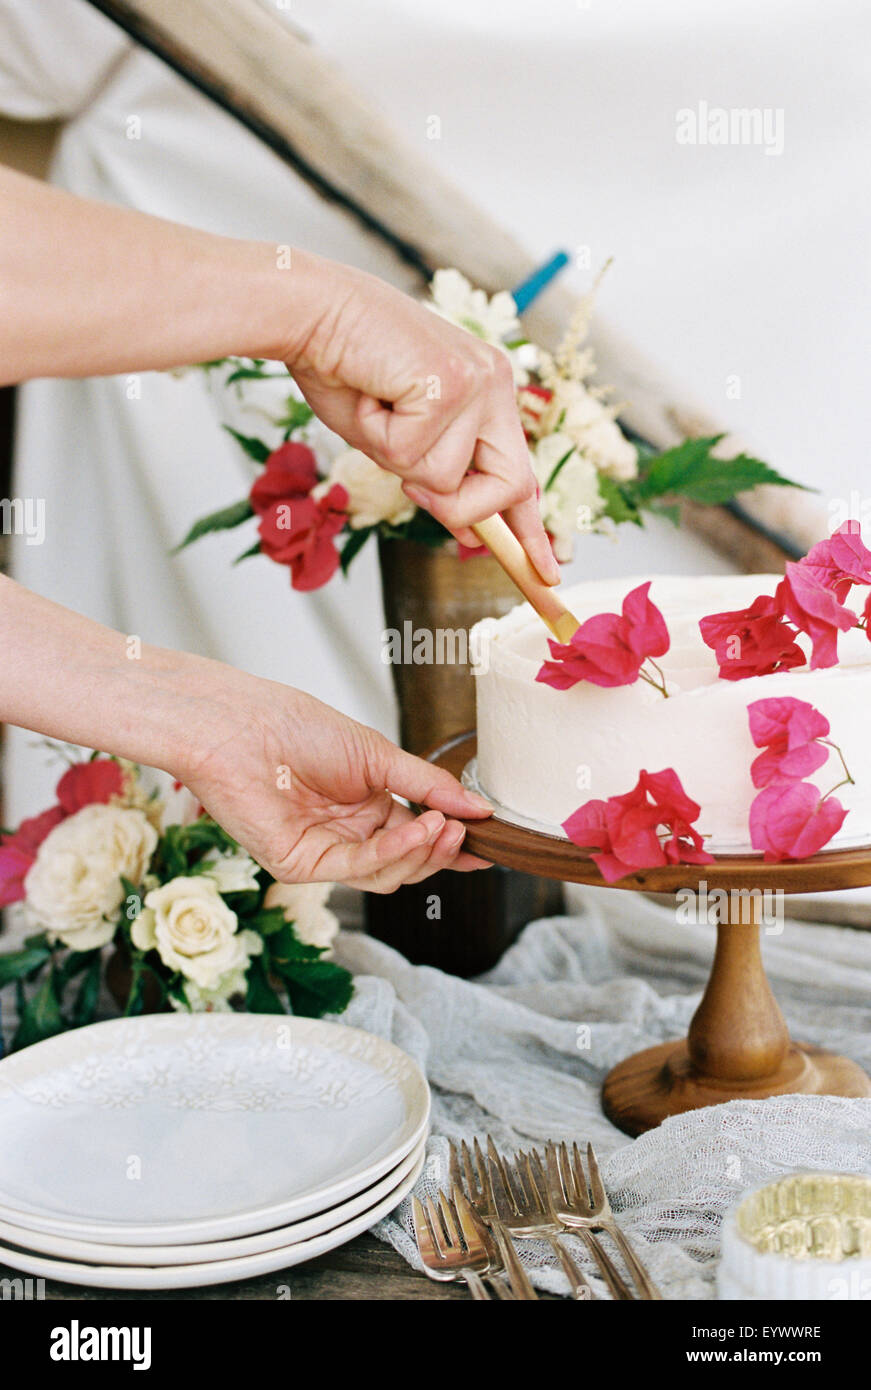 woman cutting a cake with white icing - Stock Image